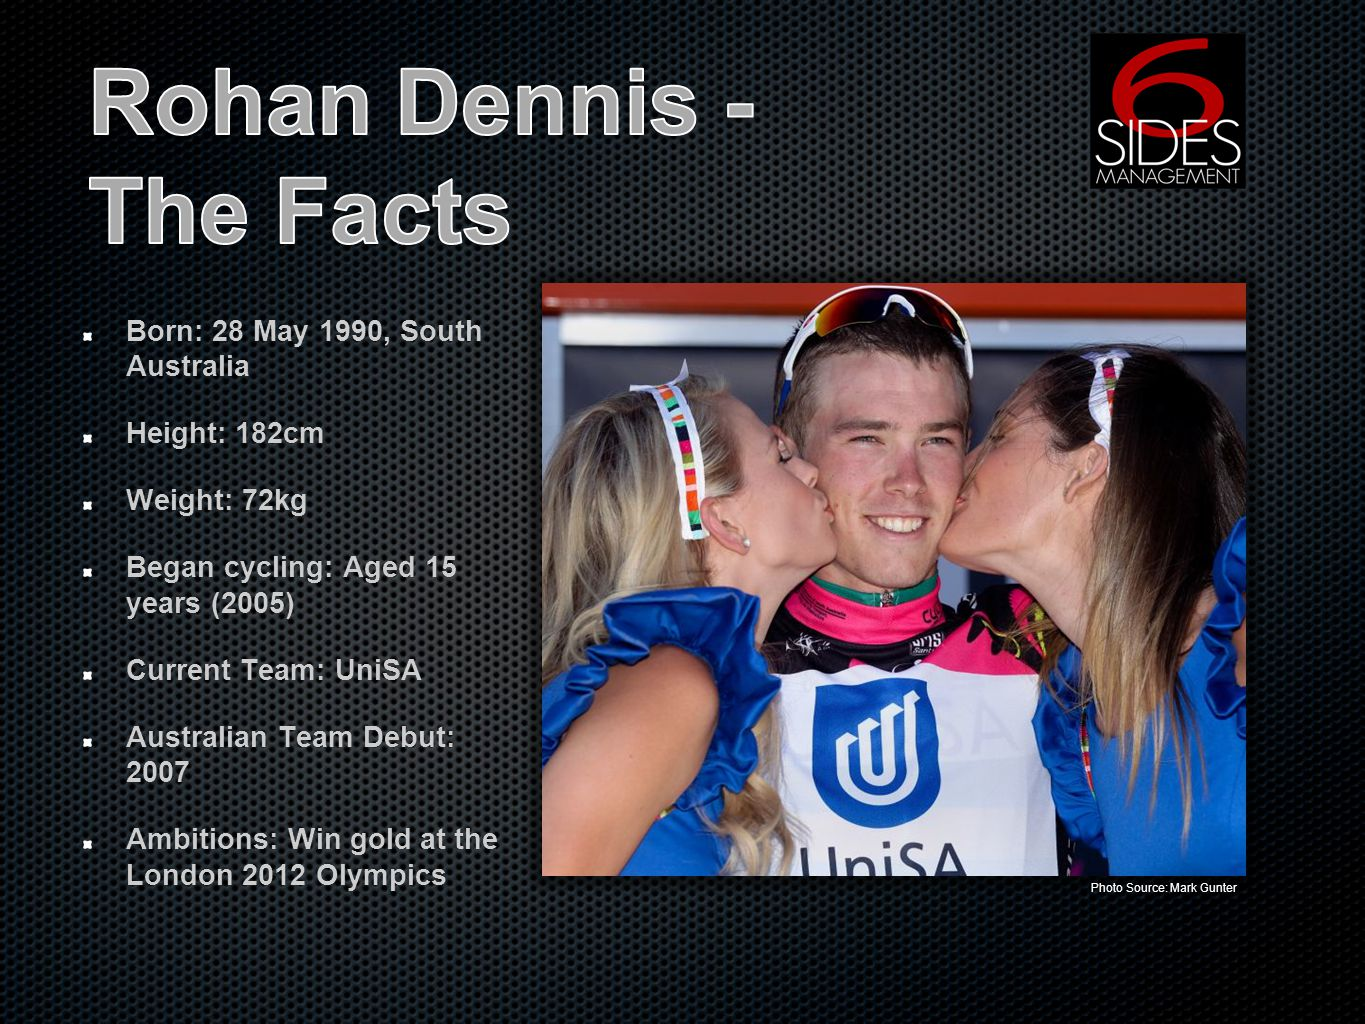 At 23 years of age, Rohan Dennis is one of Australian cyclings brightest and most determined young stars.